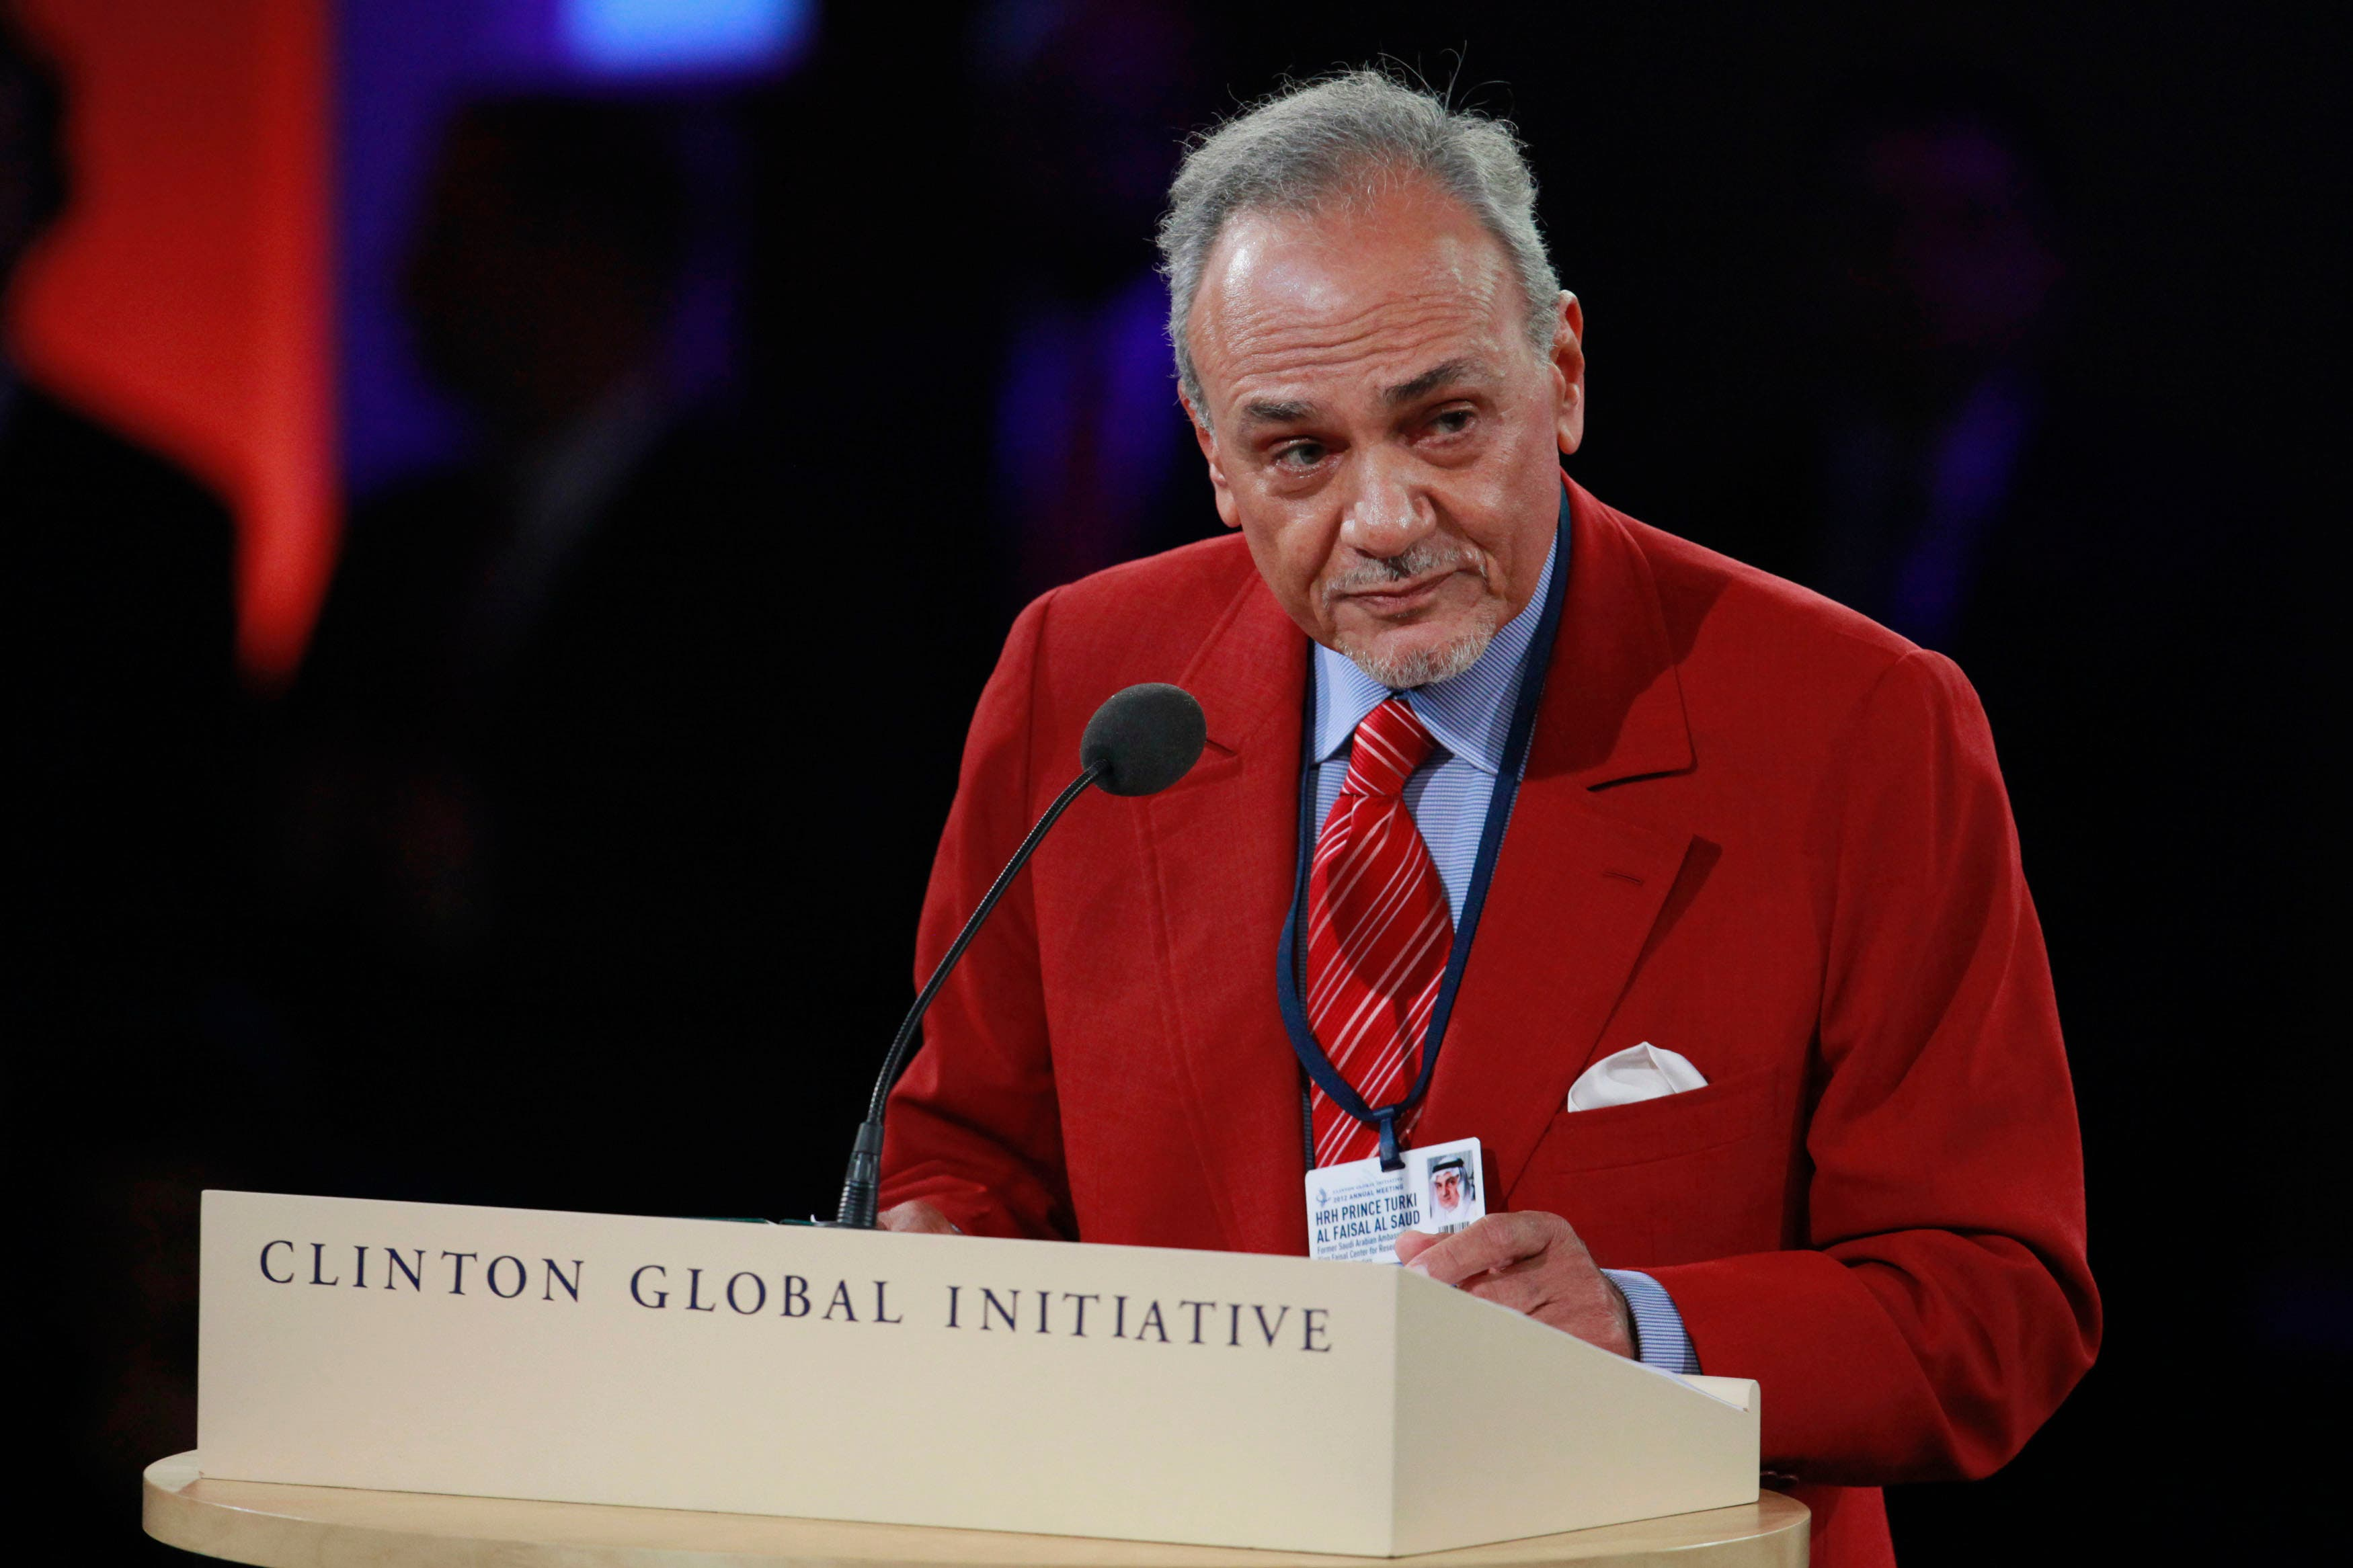 Prince Turki al-Faisal al-Saud of Saudi Arabia, speaks at the closing forum of the Clinton Global Initiative 2012 (CGI) during the final day of the event in New York, Sep. 25, 2012. (Reuters)